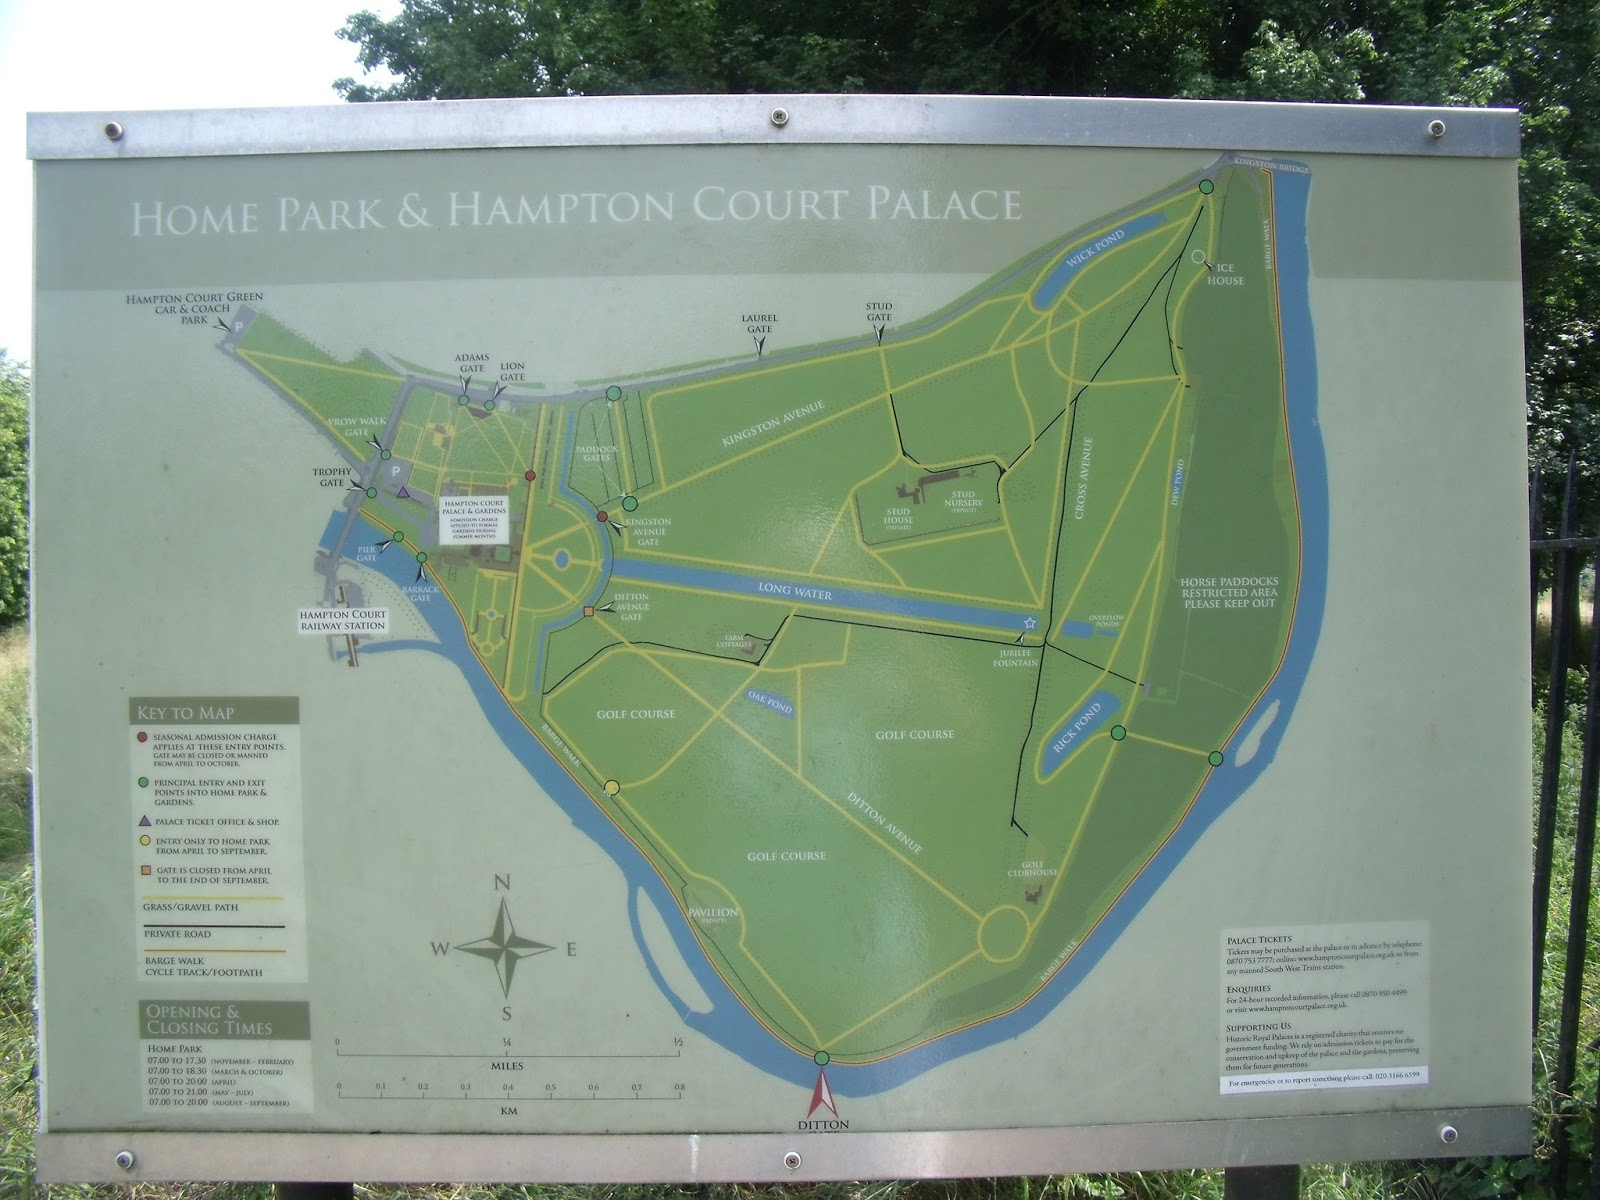 The Map Shows How River Curves Around Hampton Court Park And Home